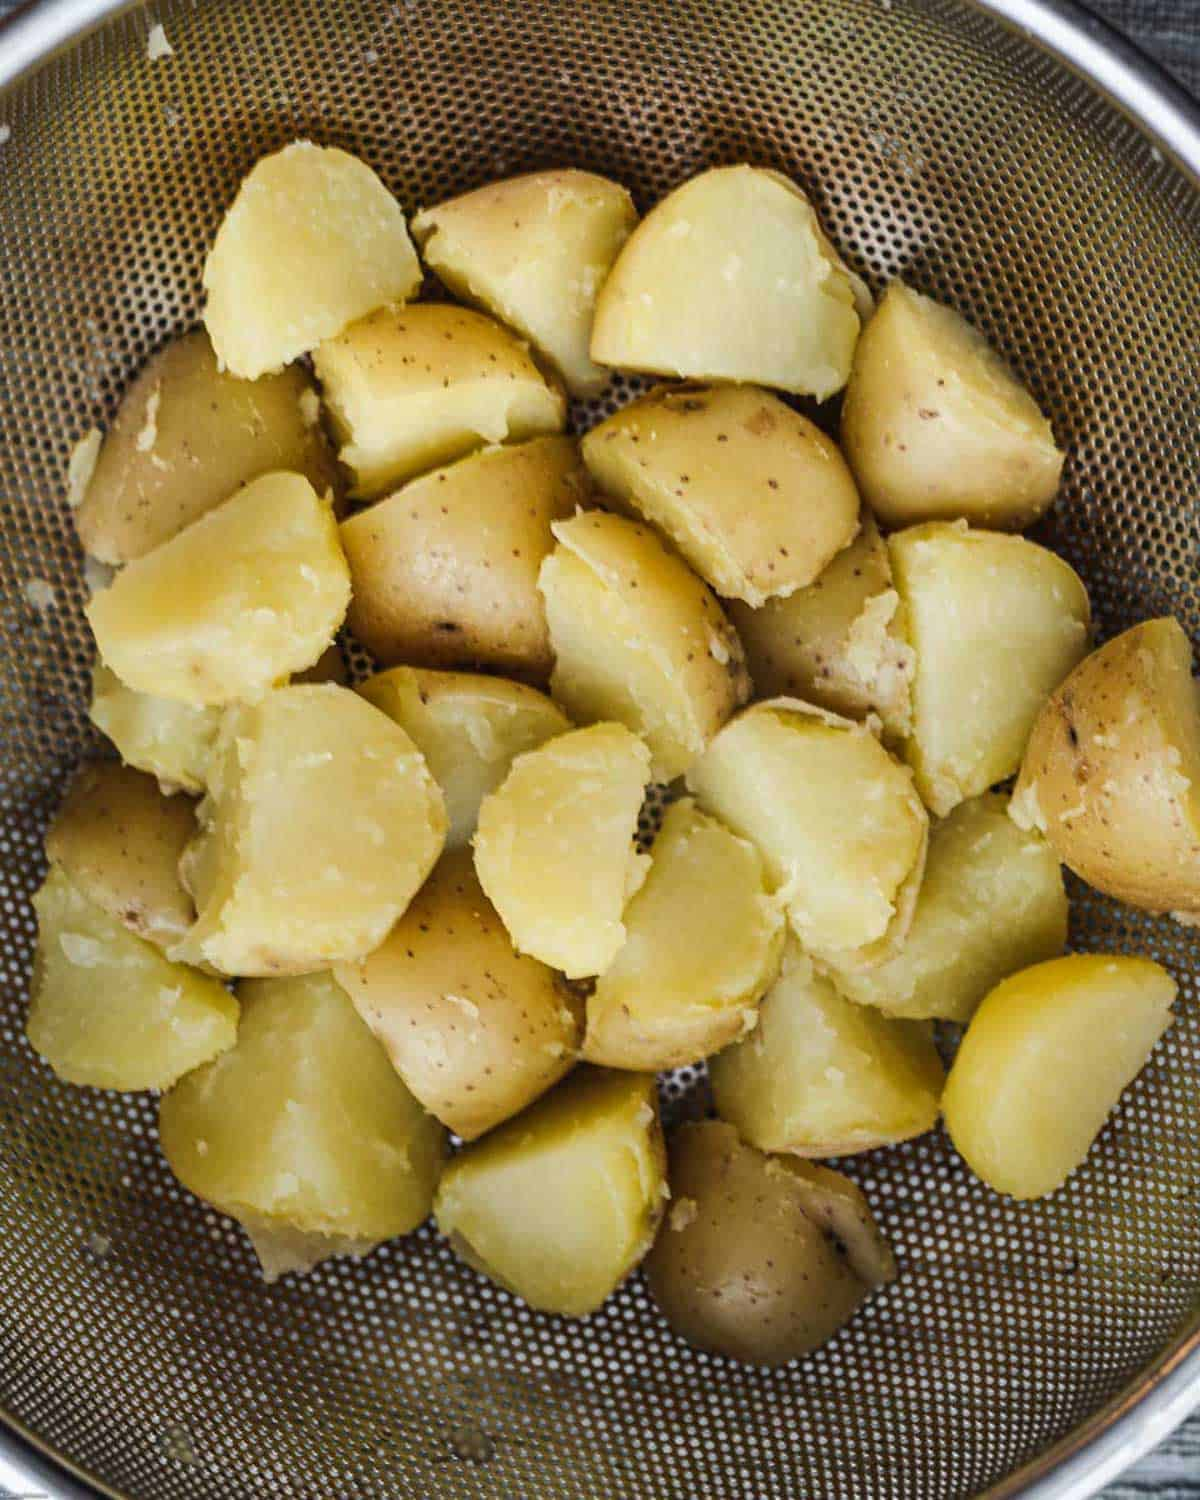 Simmered potato chunks in a colander, after being shaken to rough up the outer layer before roasting.